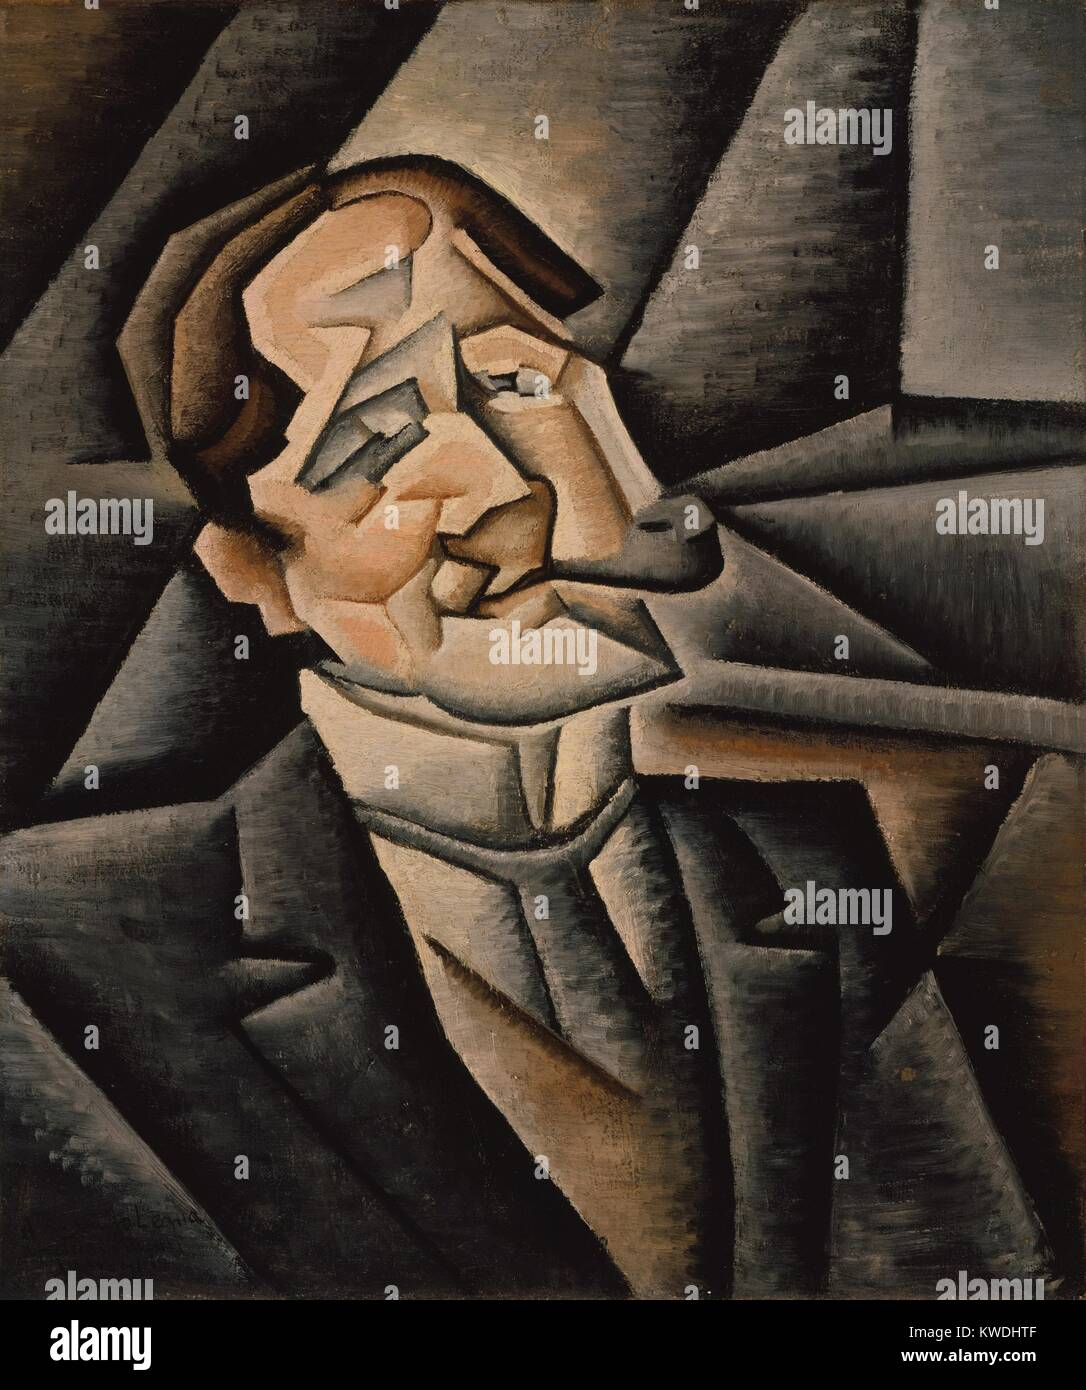 JUAN LEGUA, by Juan Gris, 1911, Spanish Cubist painting, oil on canvas. Analytic Cubist portrait of a man smoking - Stock Image